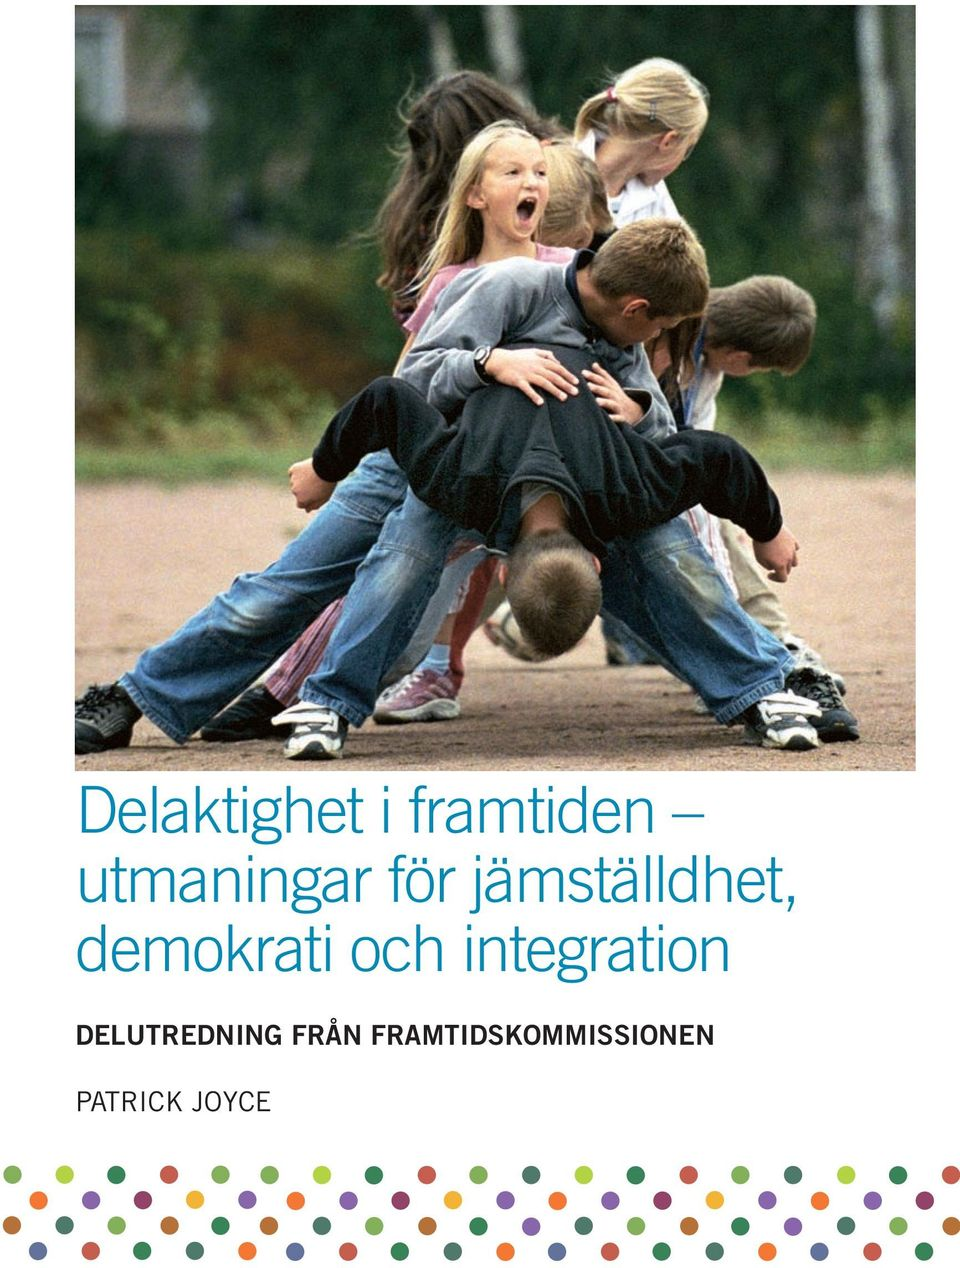 demokrati och integration